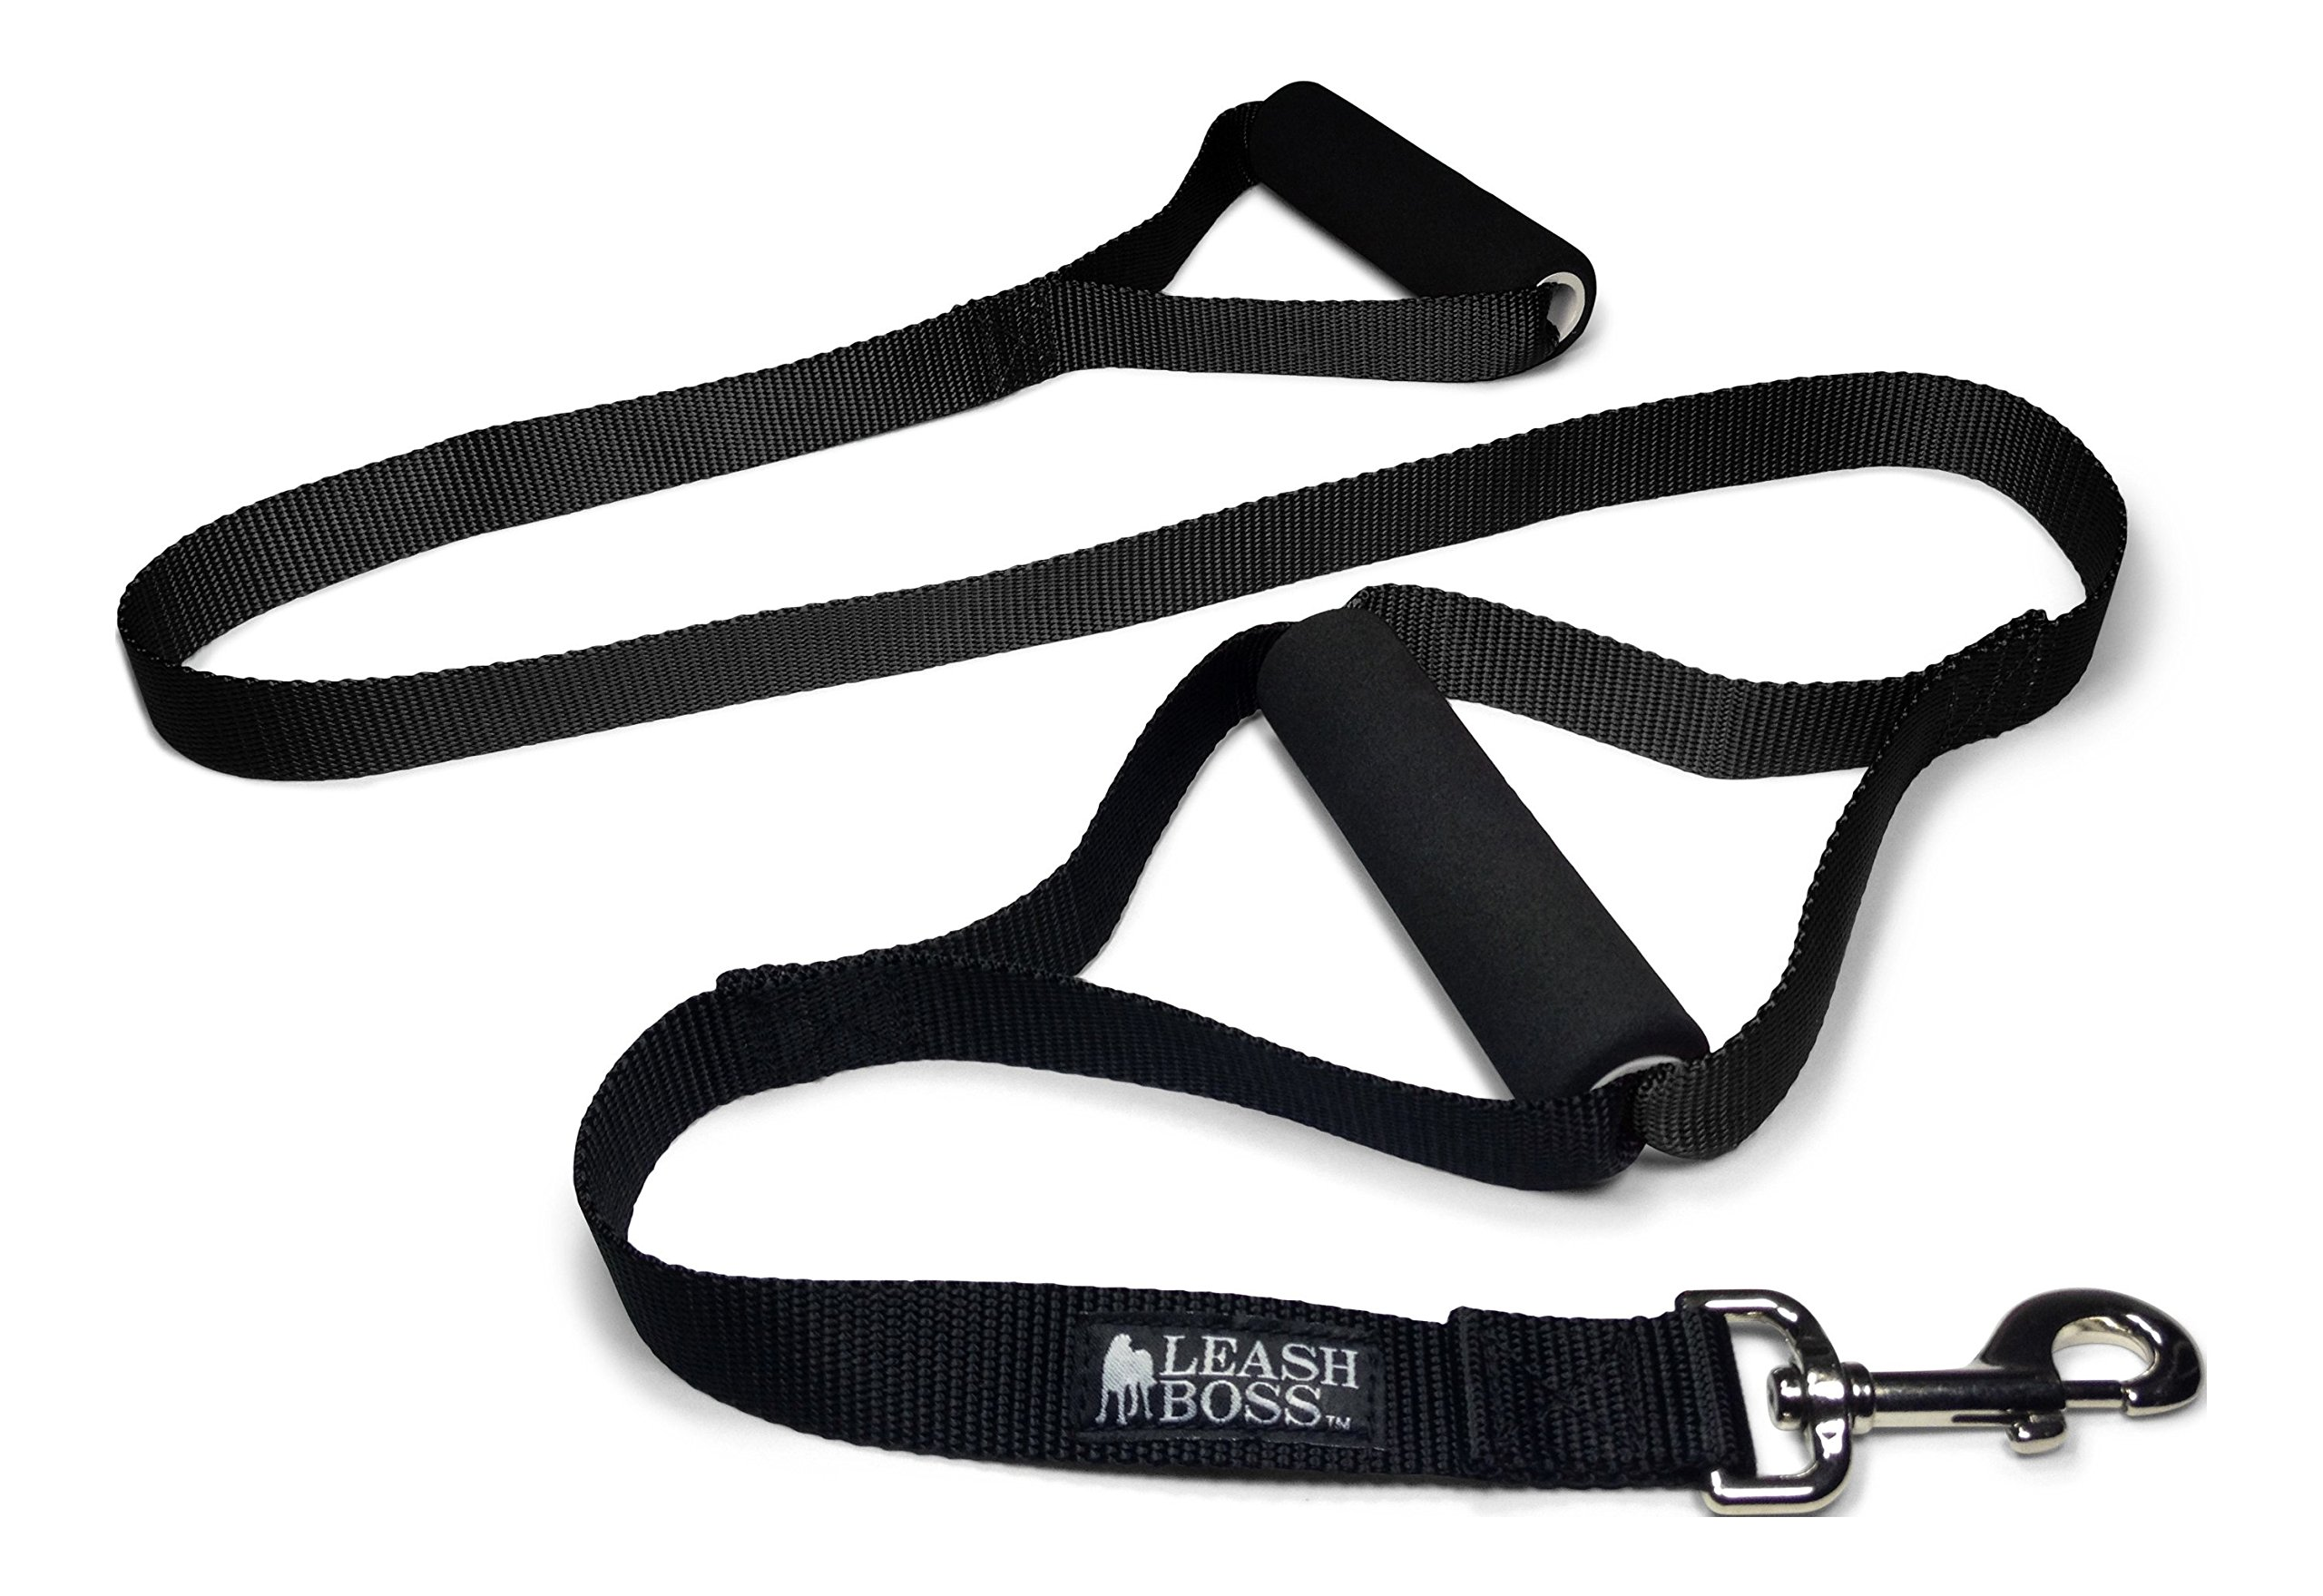 Leashboss Original - Heavy Duty Two Handle Dog Leash for Large Dogs - No Pull Double Handle Training Lead for Walking Big Dogs (Black) by Leash Boss